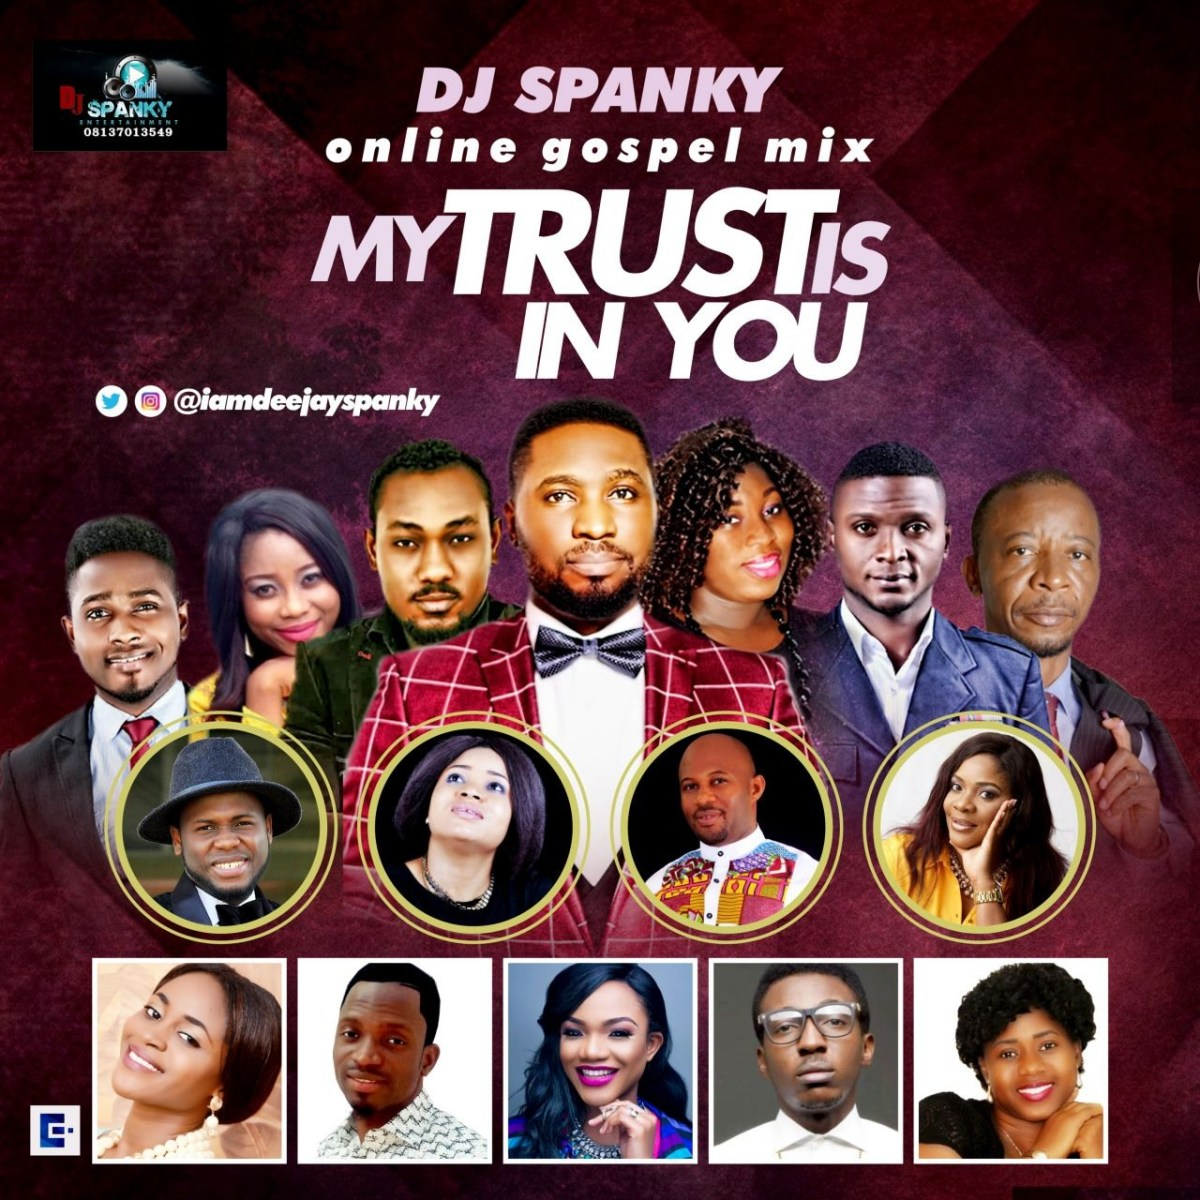 #Mixtape : My Trust Is In You (Praise & Worship Mixtape) - DJ Spanky [@iamdeejayspanky, @kelvocal @iamfreshboii]